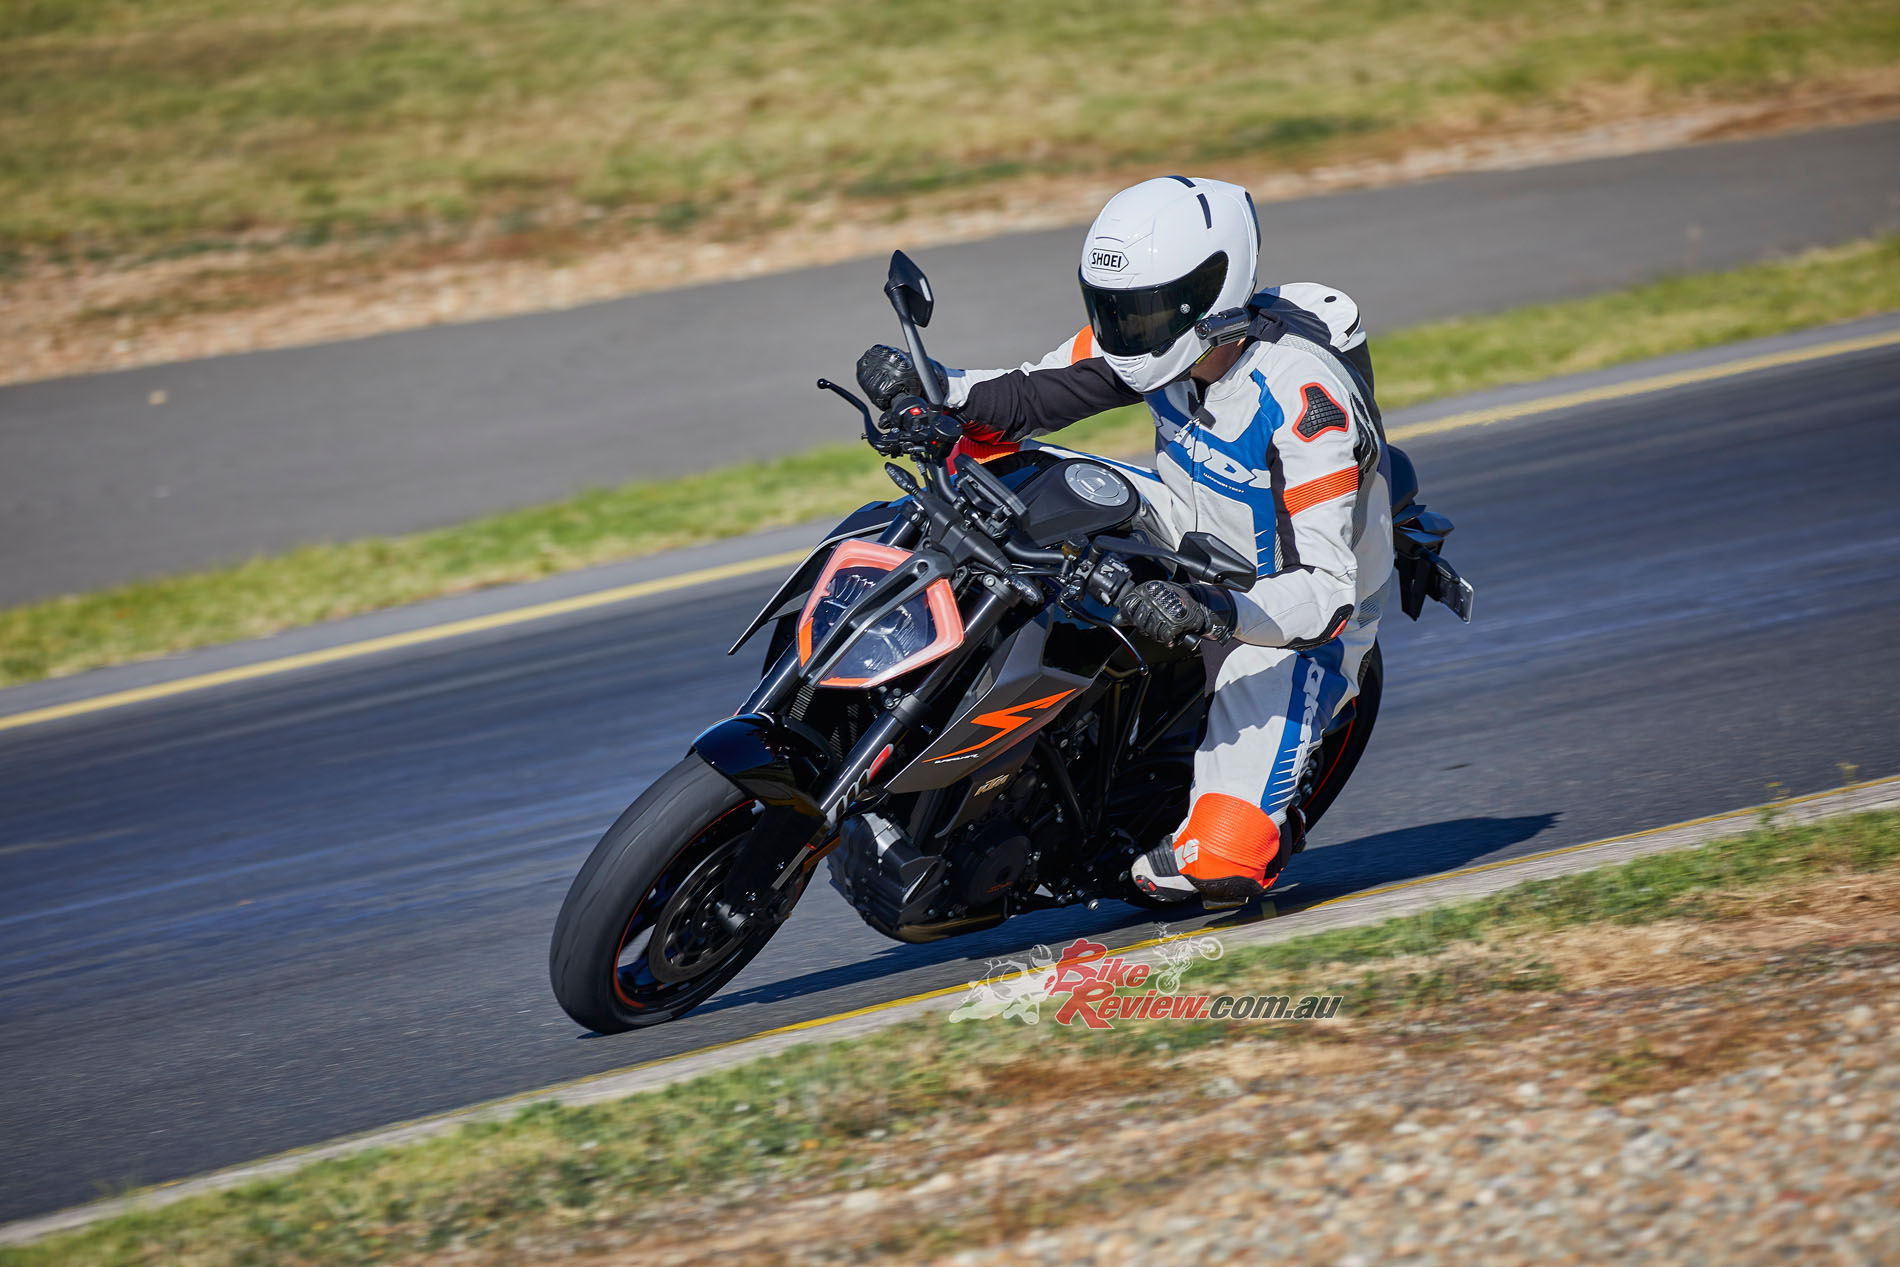 Ground clearance is exceptional, ride position natural and the WP shock good, responding to small changes. Firing off turns is where the big grins come from on this Beast 2.0!